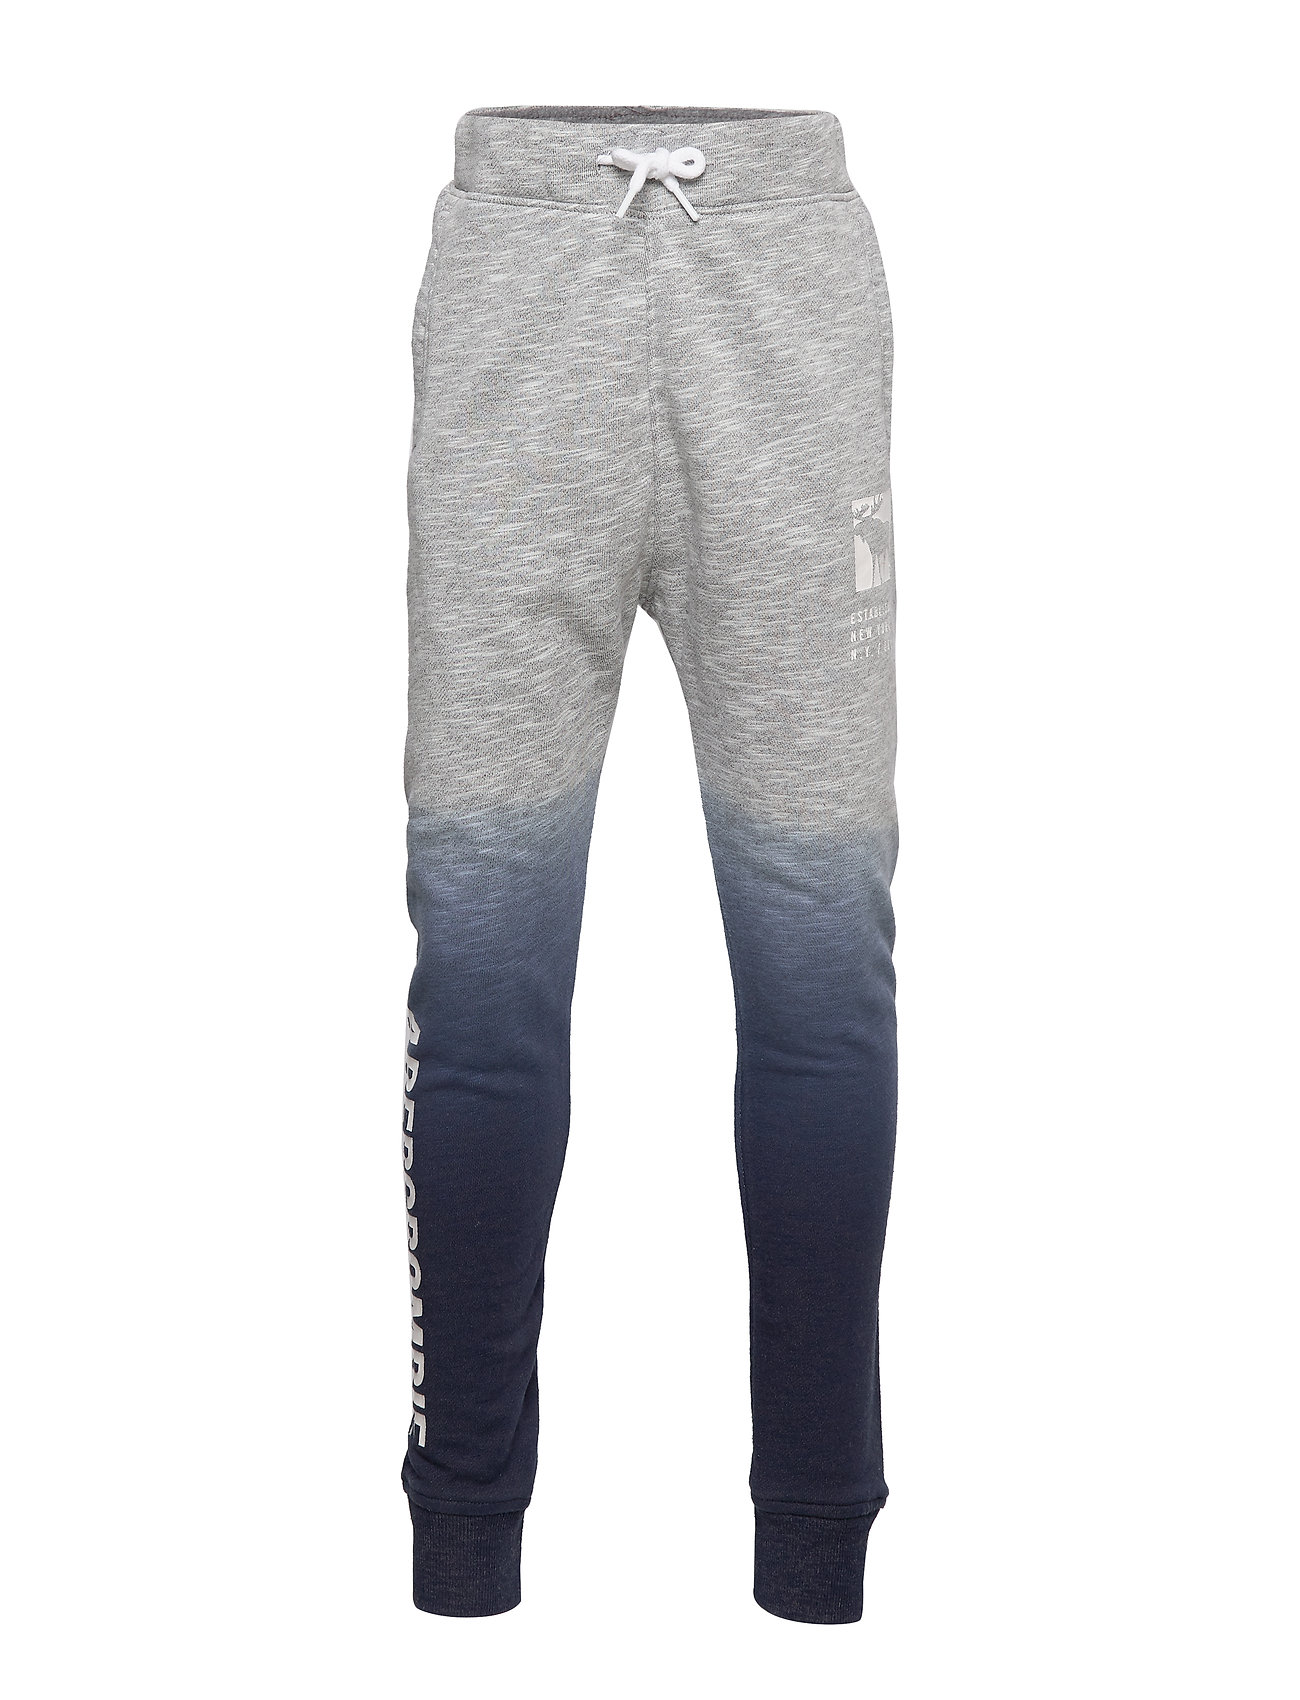 Abercrombie & Fitch Logo Jogger - MED SOLID GREY